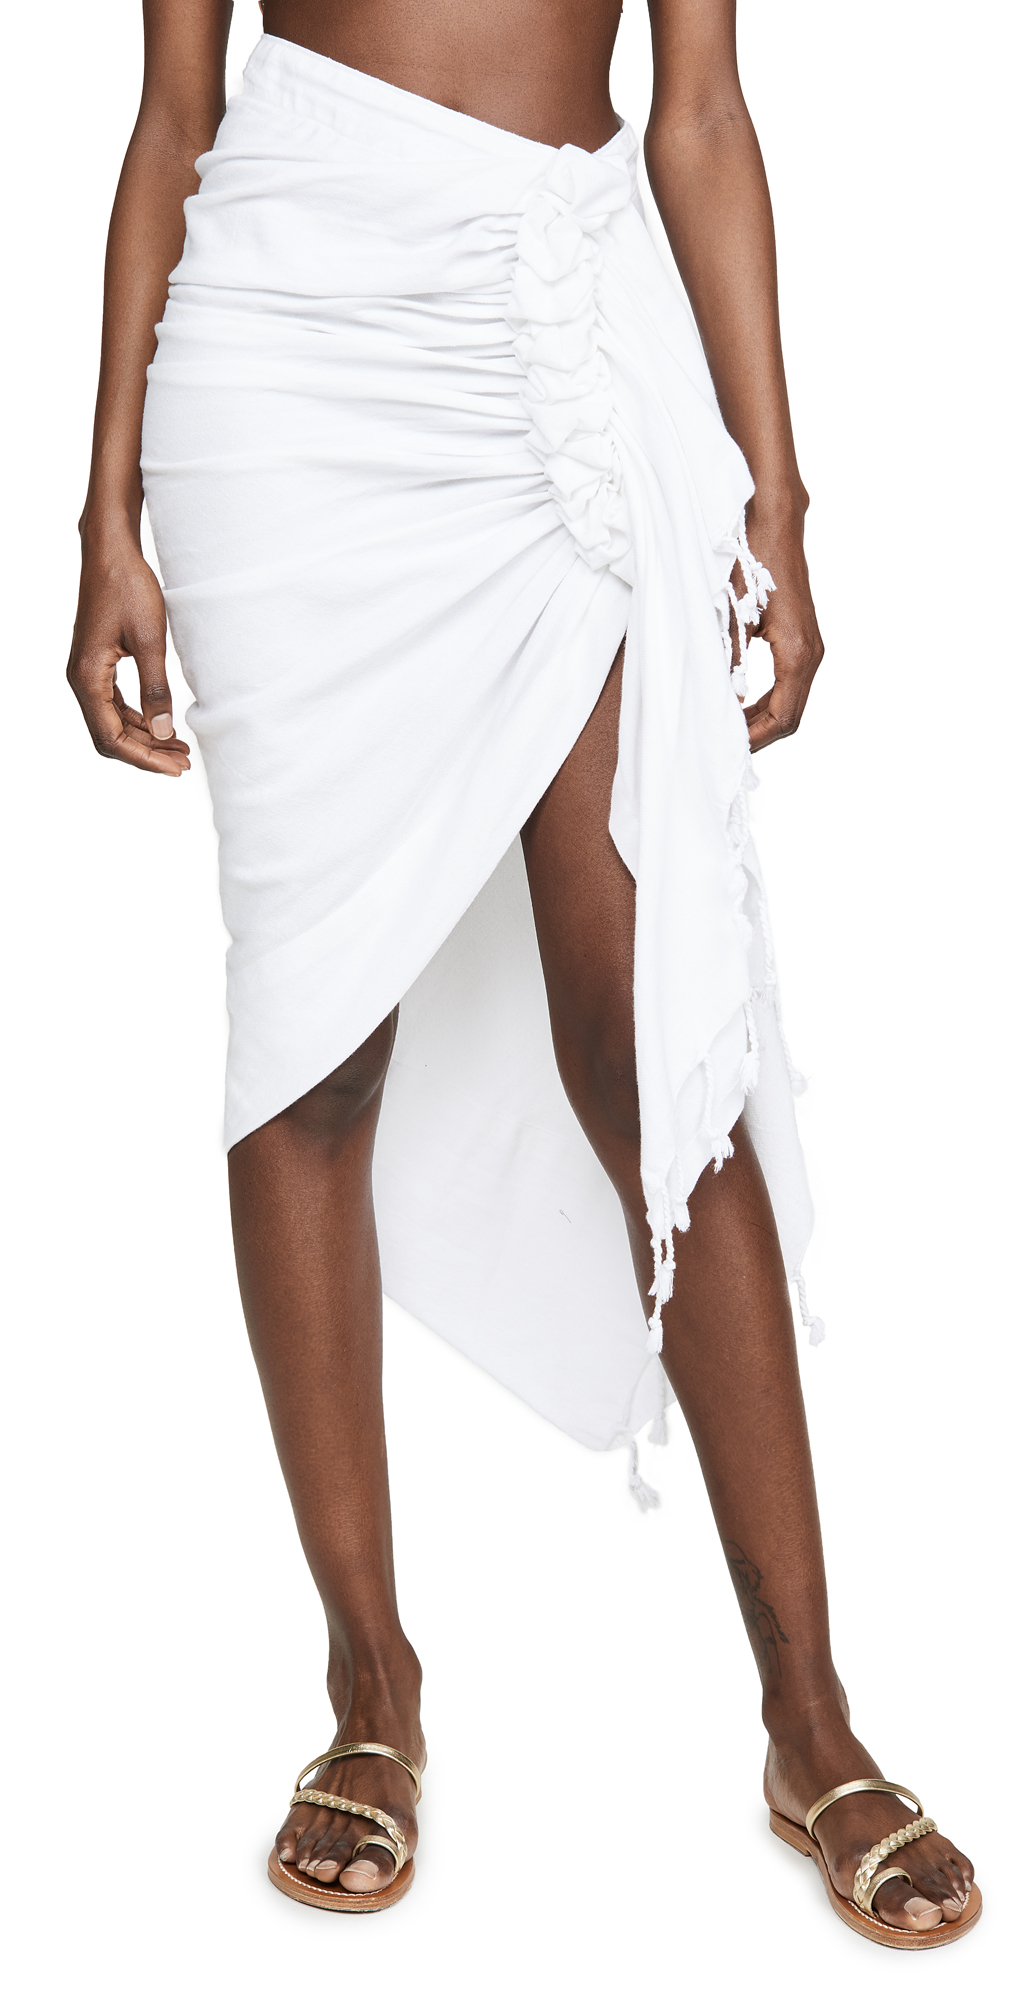 Tulum Cover Up Skirt